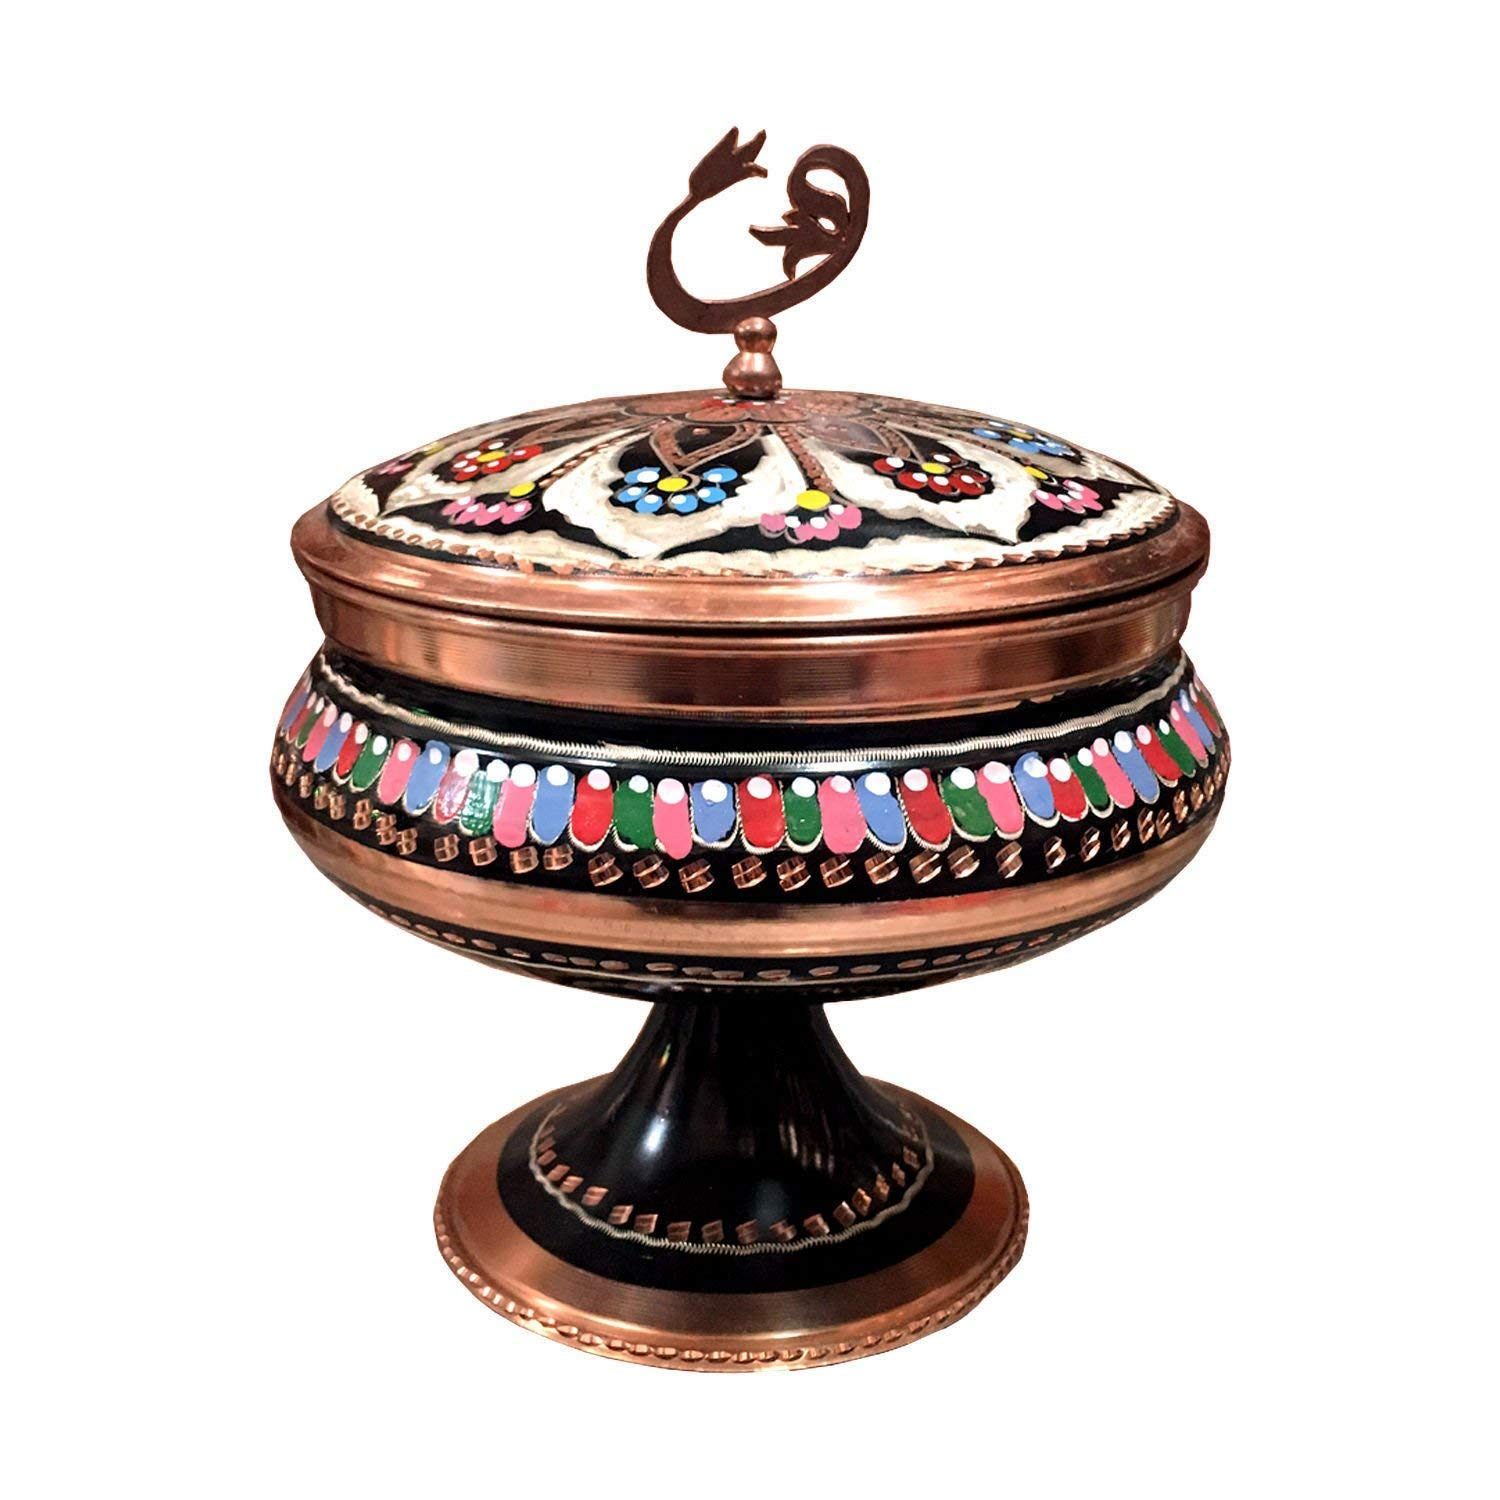 Turkish Gorgeous Handcrafted HandPainted Sugar Candy Chocolate Serving Bowl